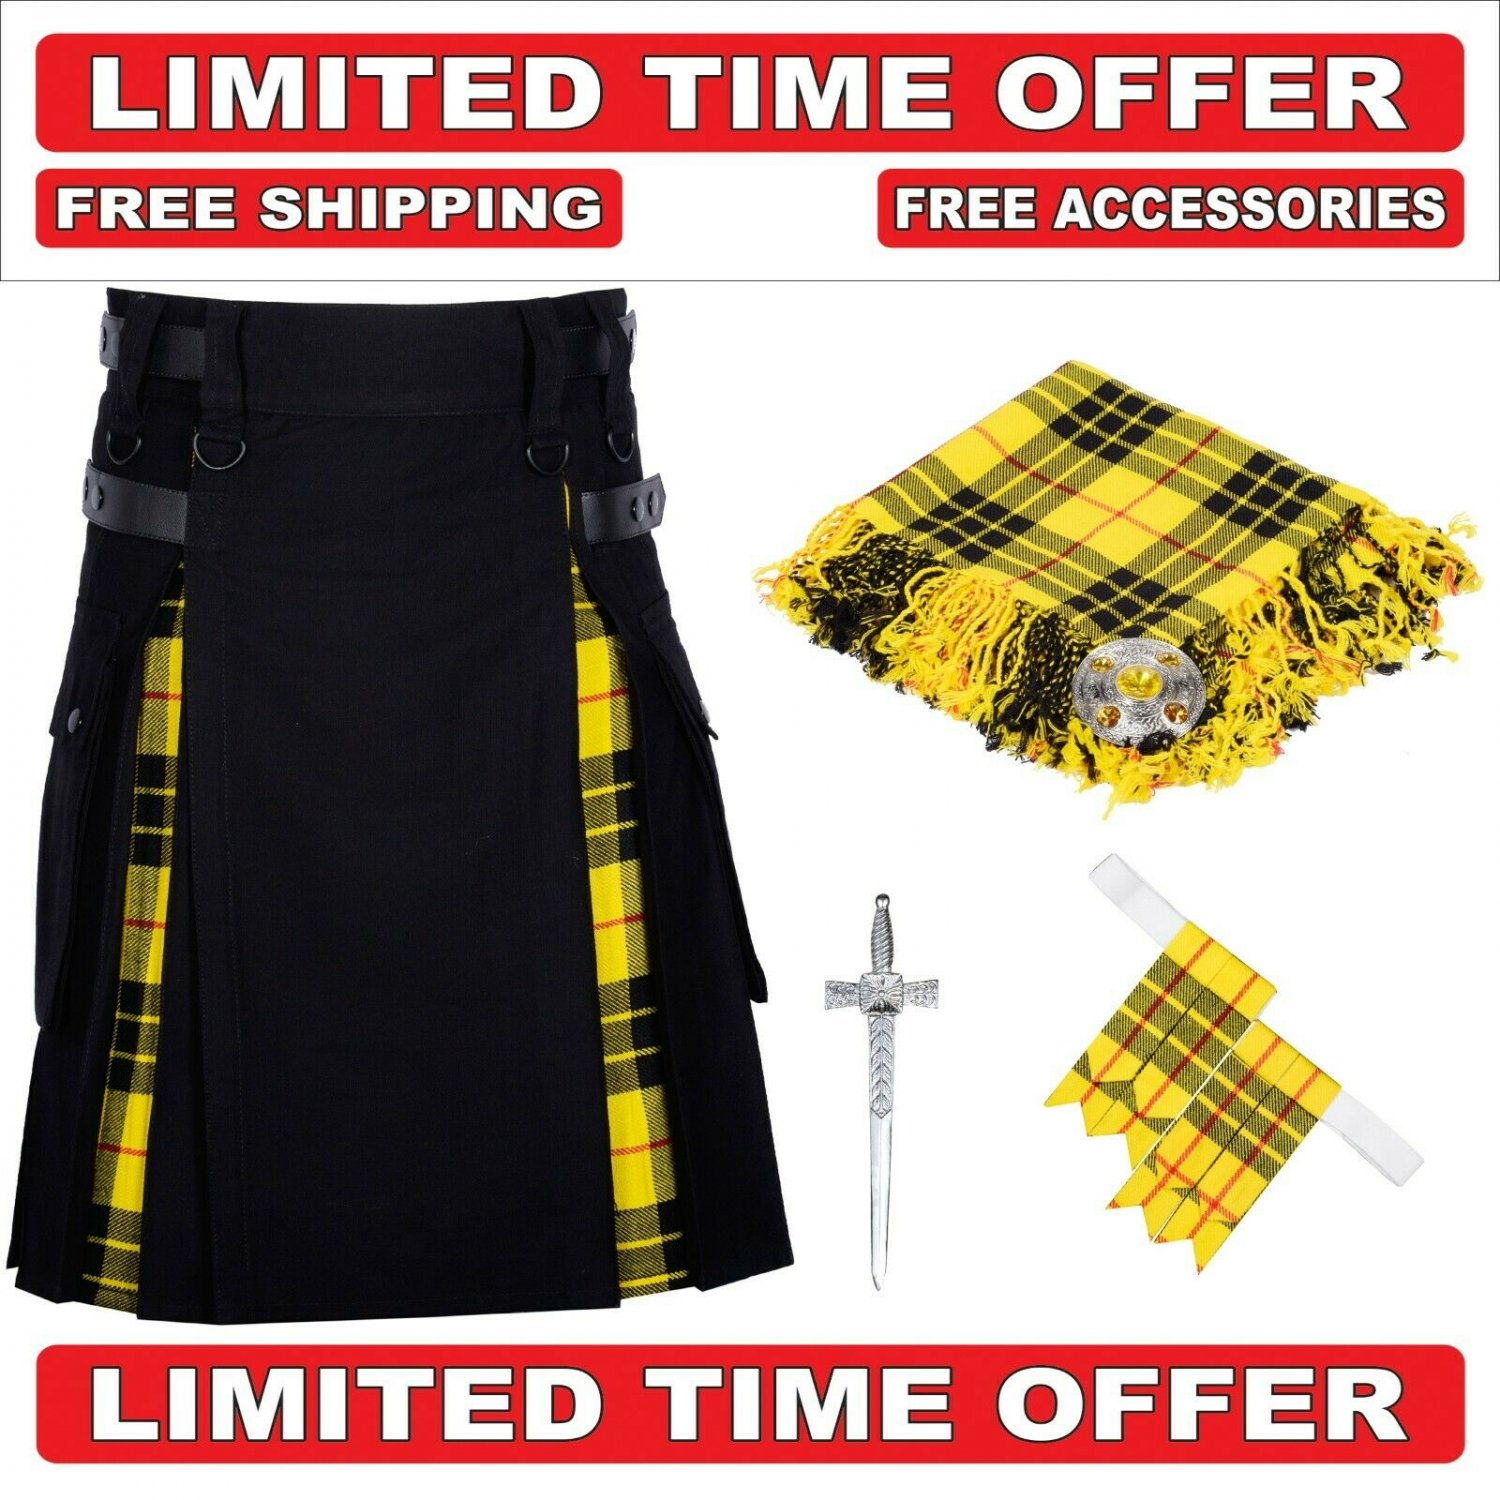 40 size Black Cotton Macleod Tartan Hybrid Utility Kilt For Men-Free Accessories - Free Shipping